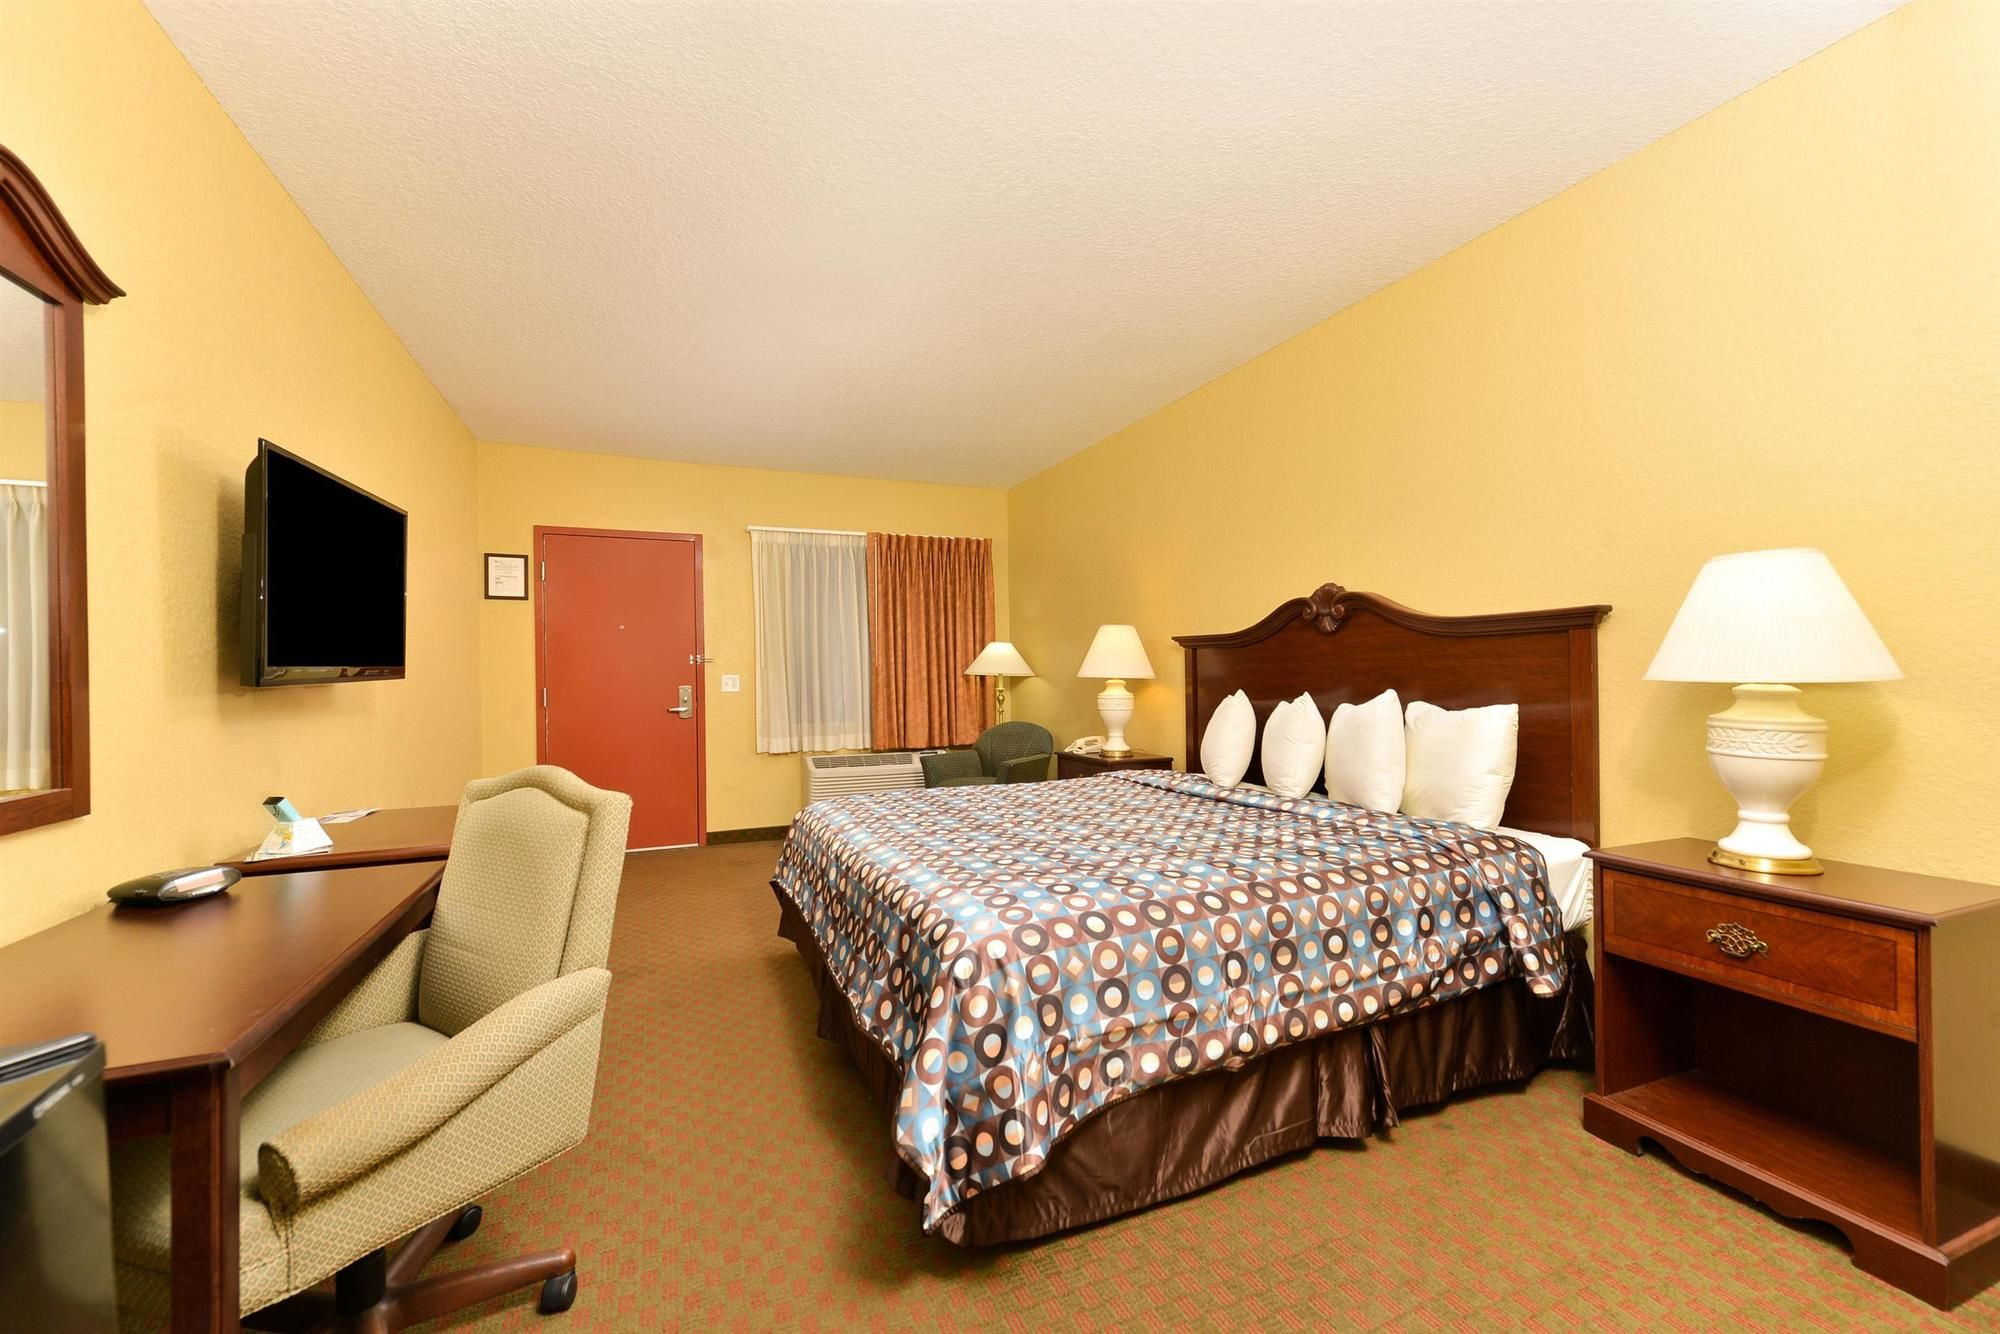 Americas Best Value Inn in Starke, FL